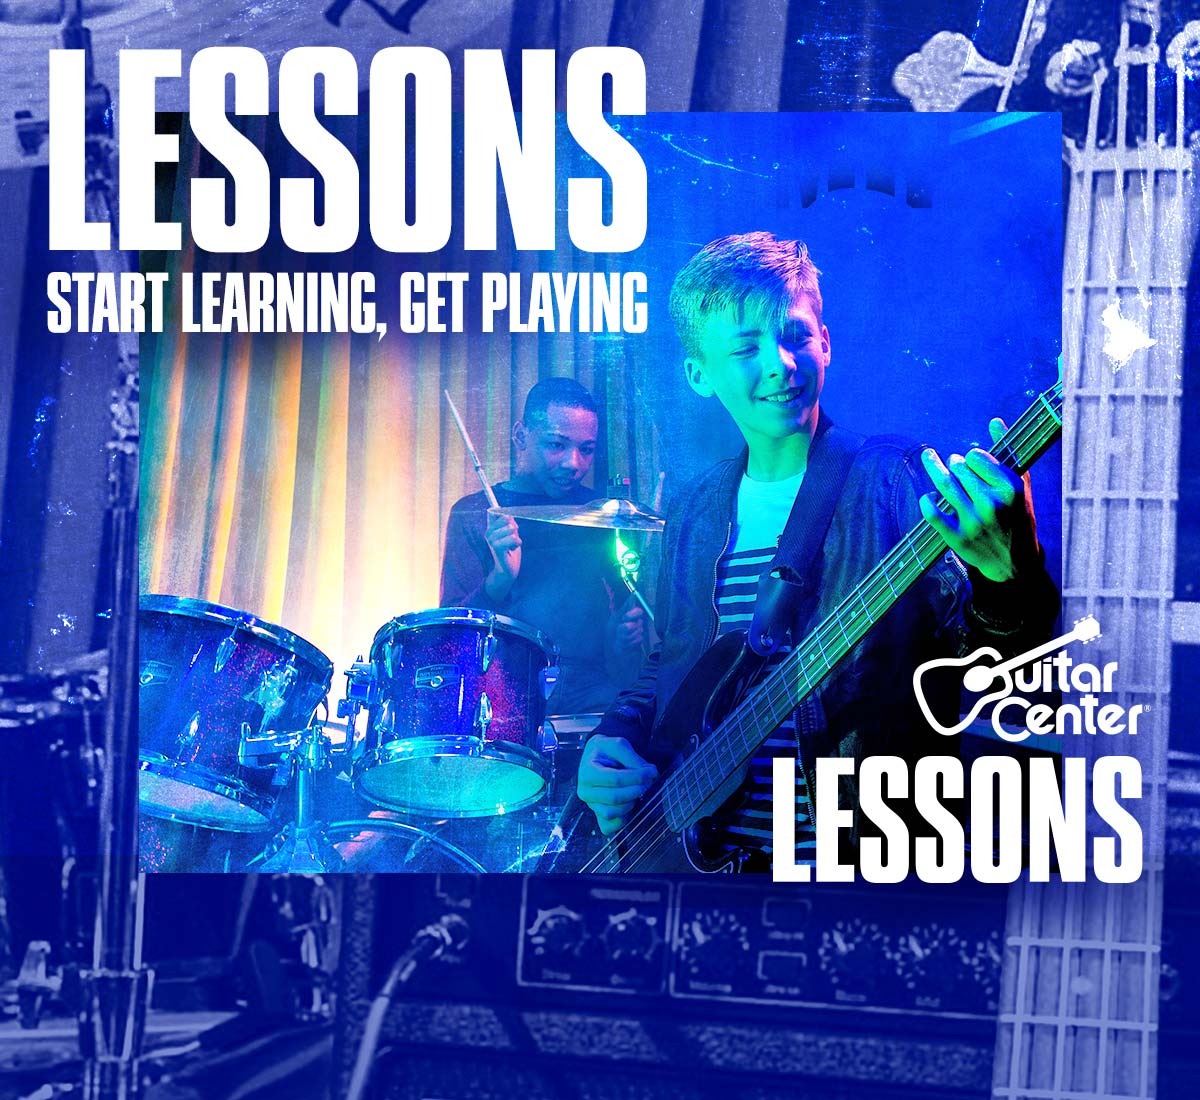 Lessons. Start learning, get playing.Guitar Center Lessons, let's go.